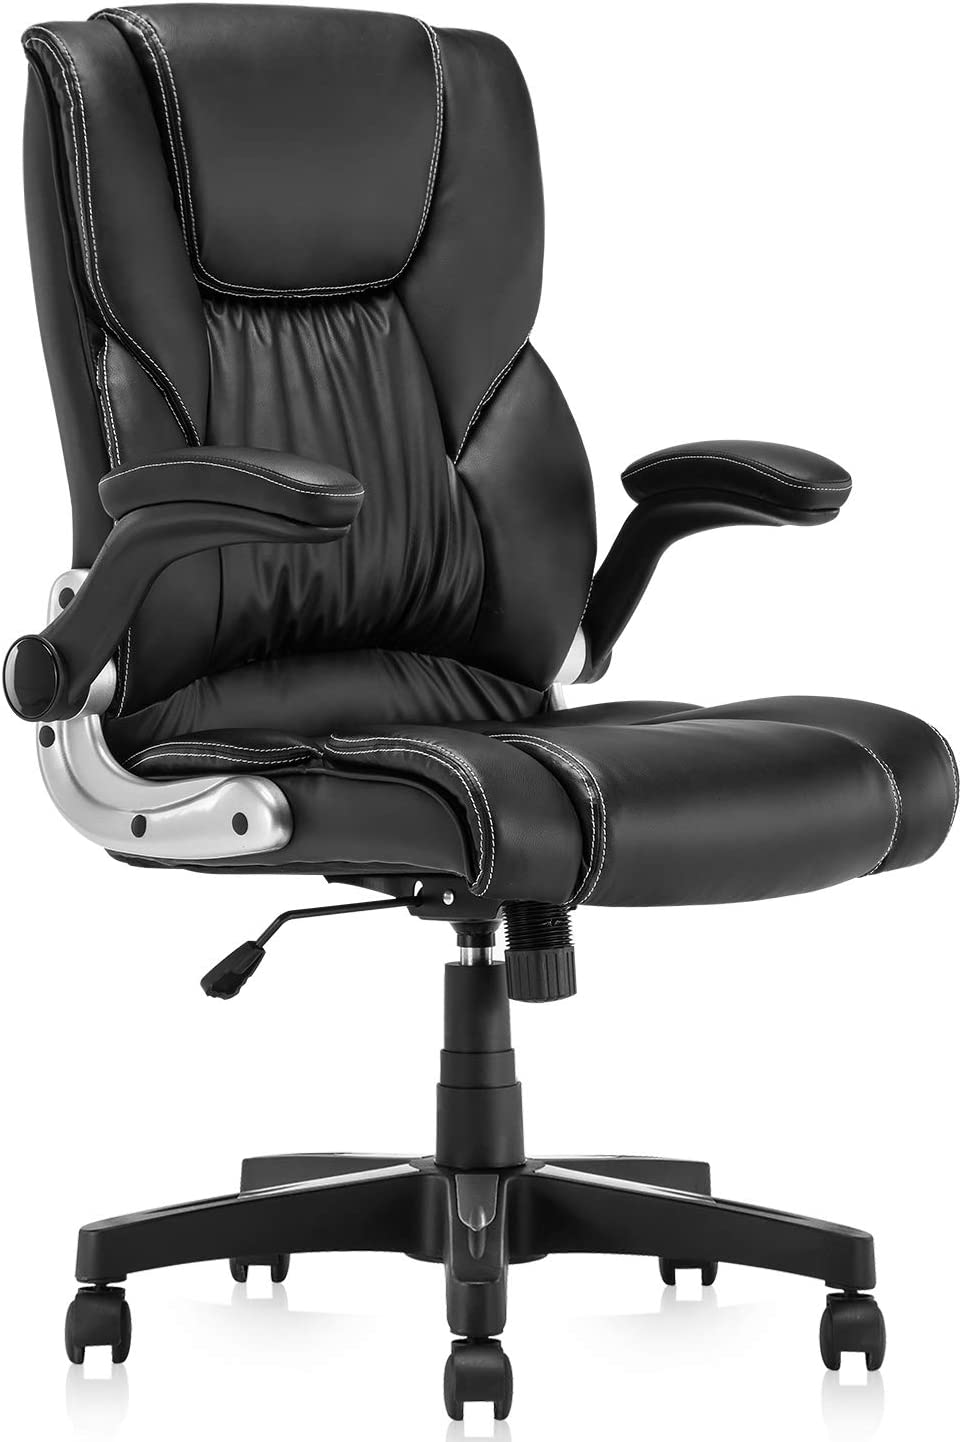 B2C2B Leather Executive Office Chair - High Back Computer Desk Chair with Adjustable Angle Recline and Seat Height Thick Padding